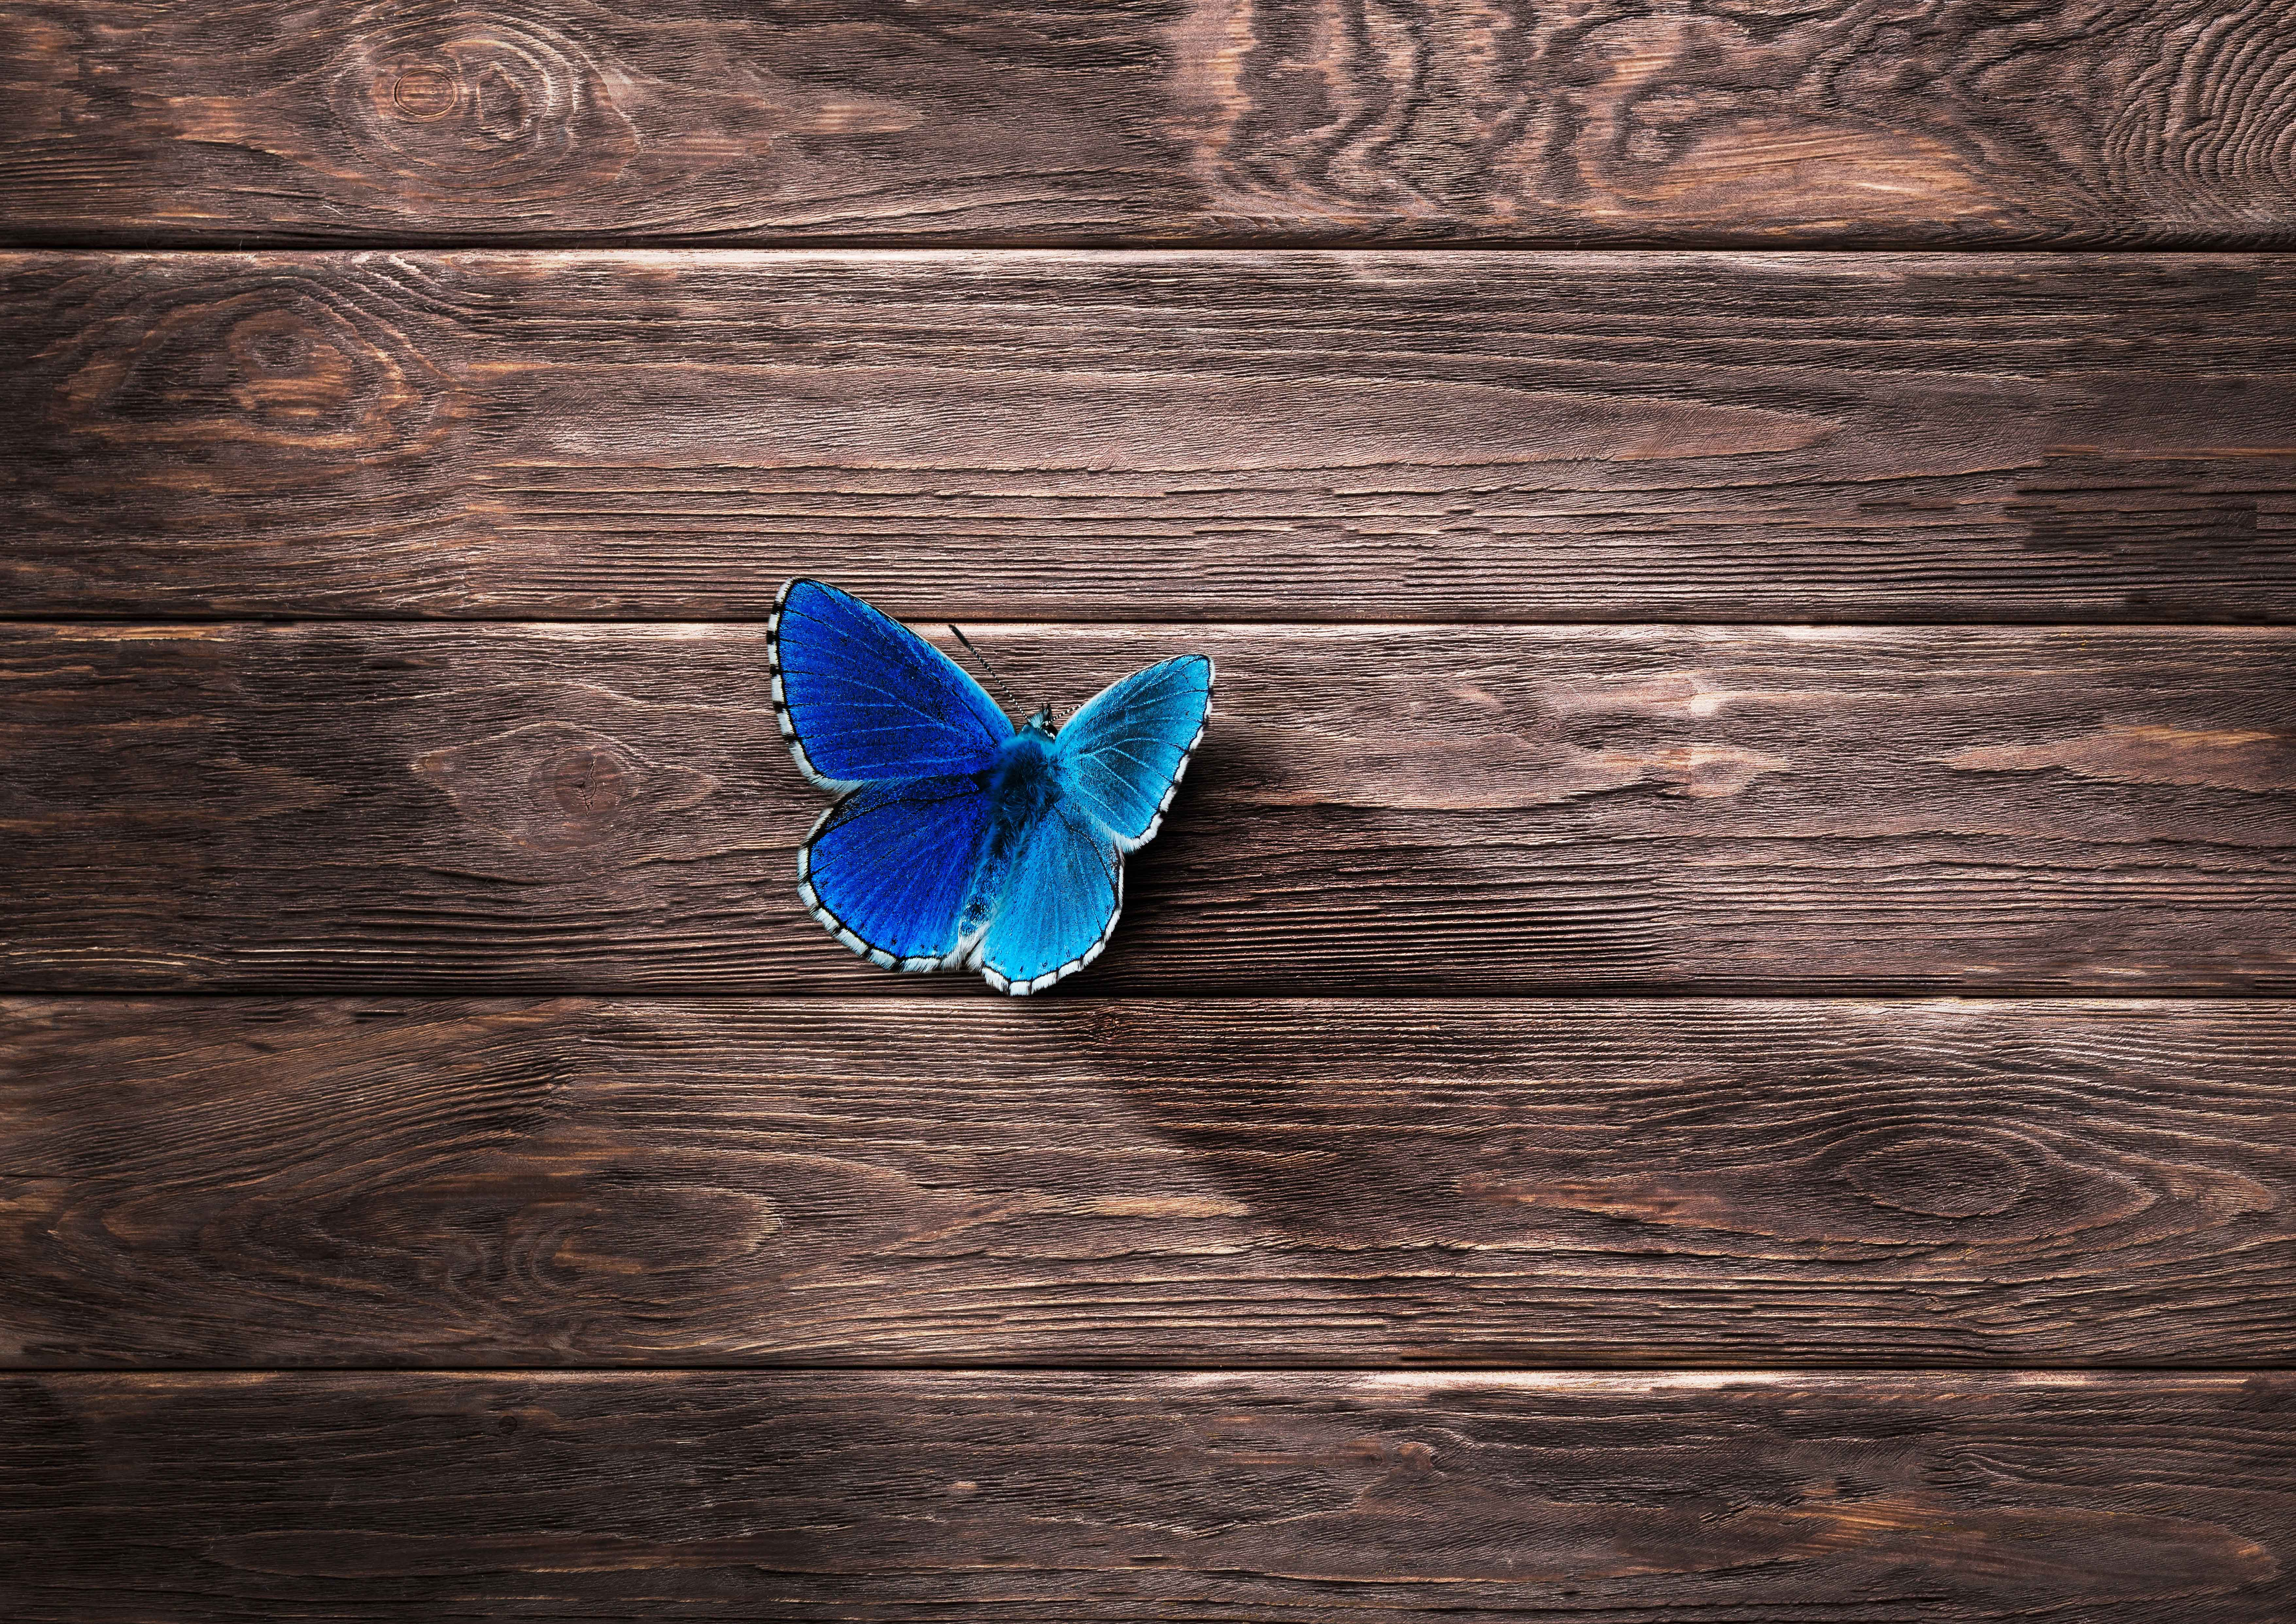 8k Animal Wallpaper Download: Butterfly 8k, HD Animals, 4k Wallpapers, Images